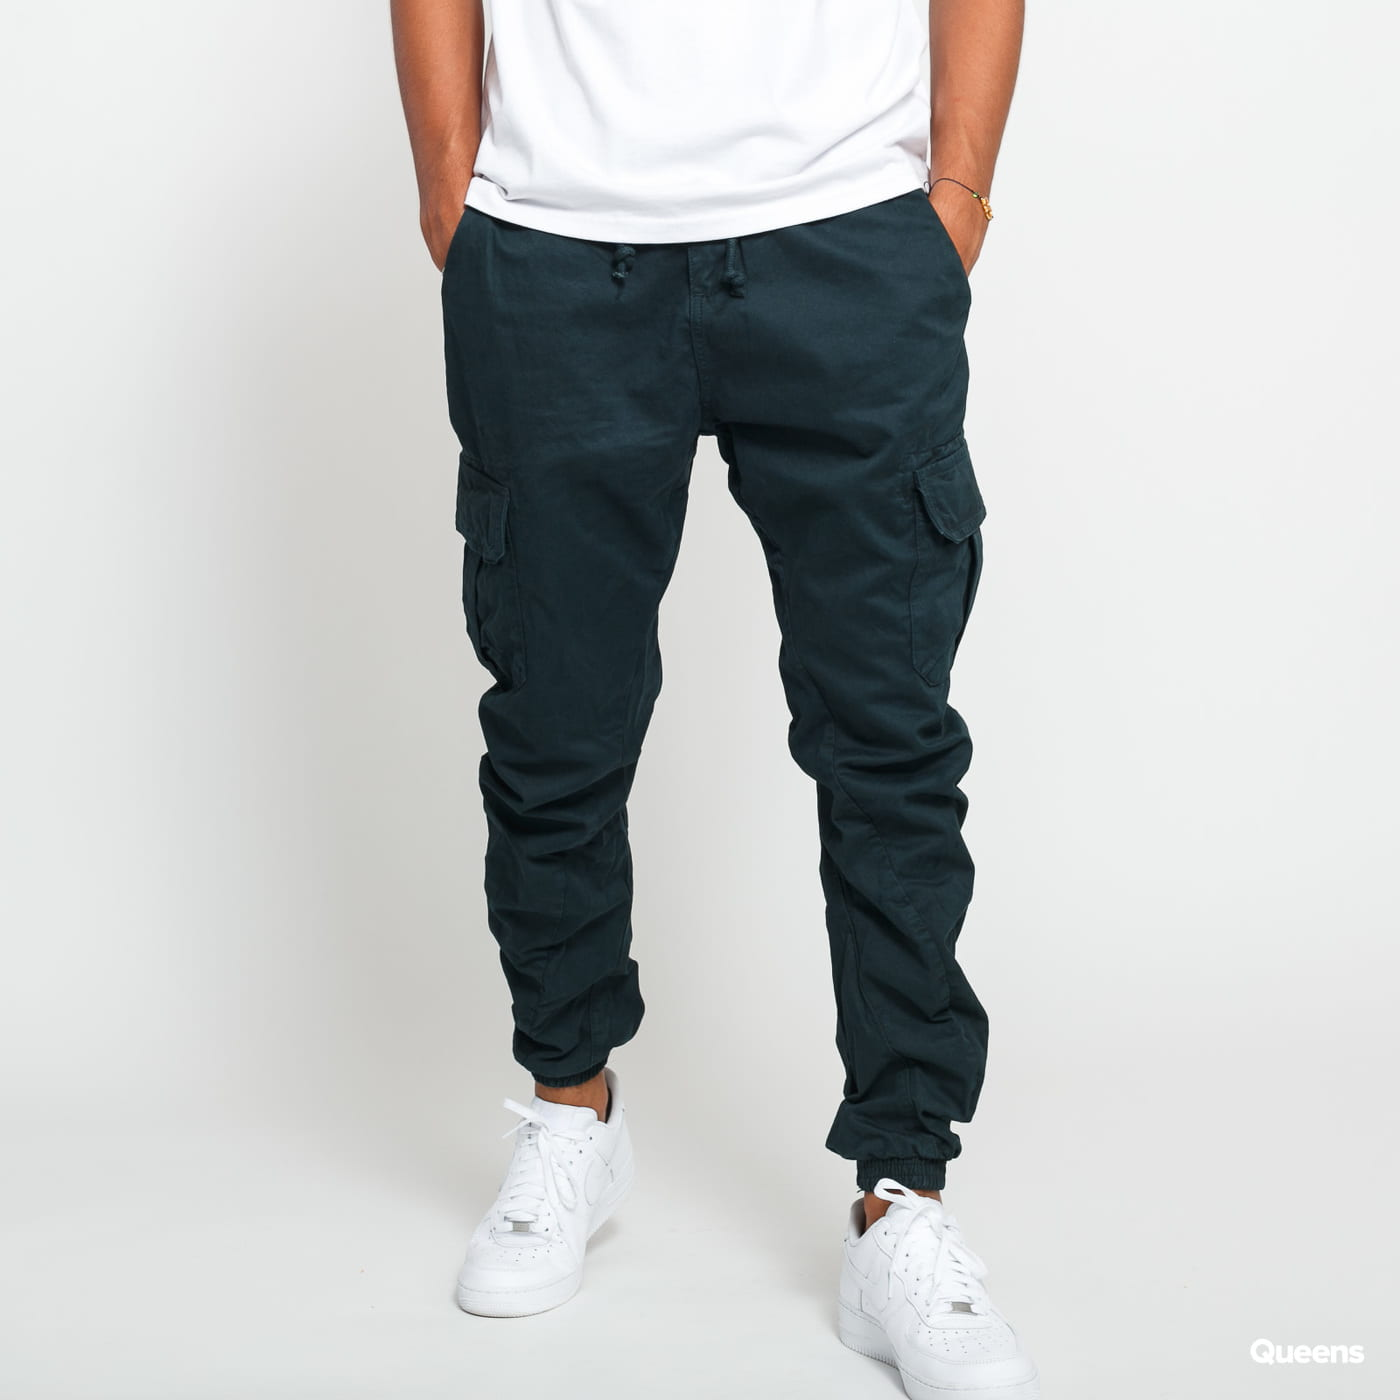 Urban Classics Cargo Jogging Pants dark green